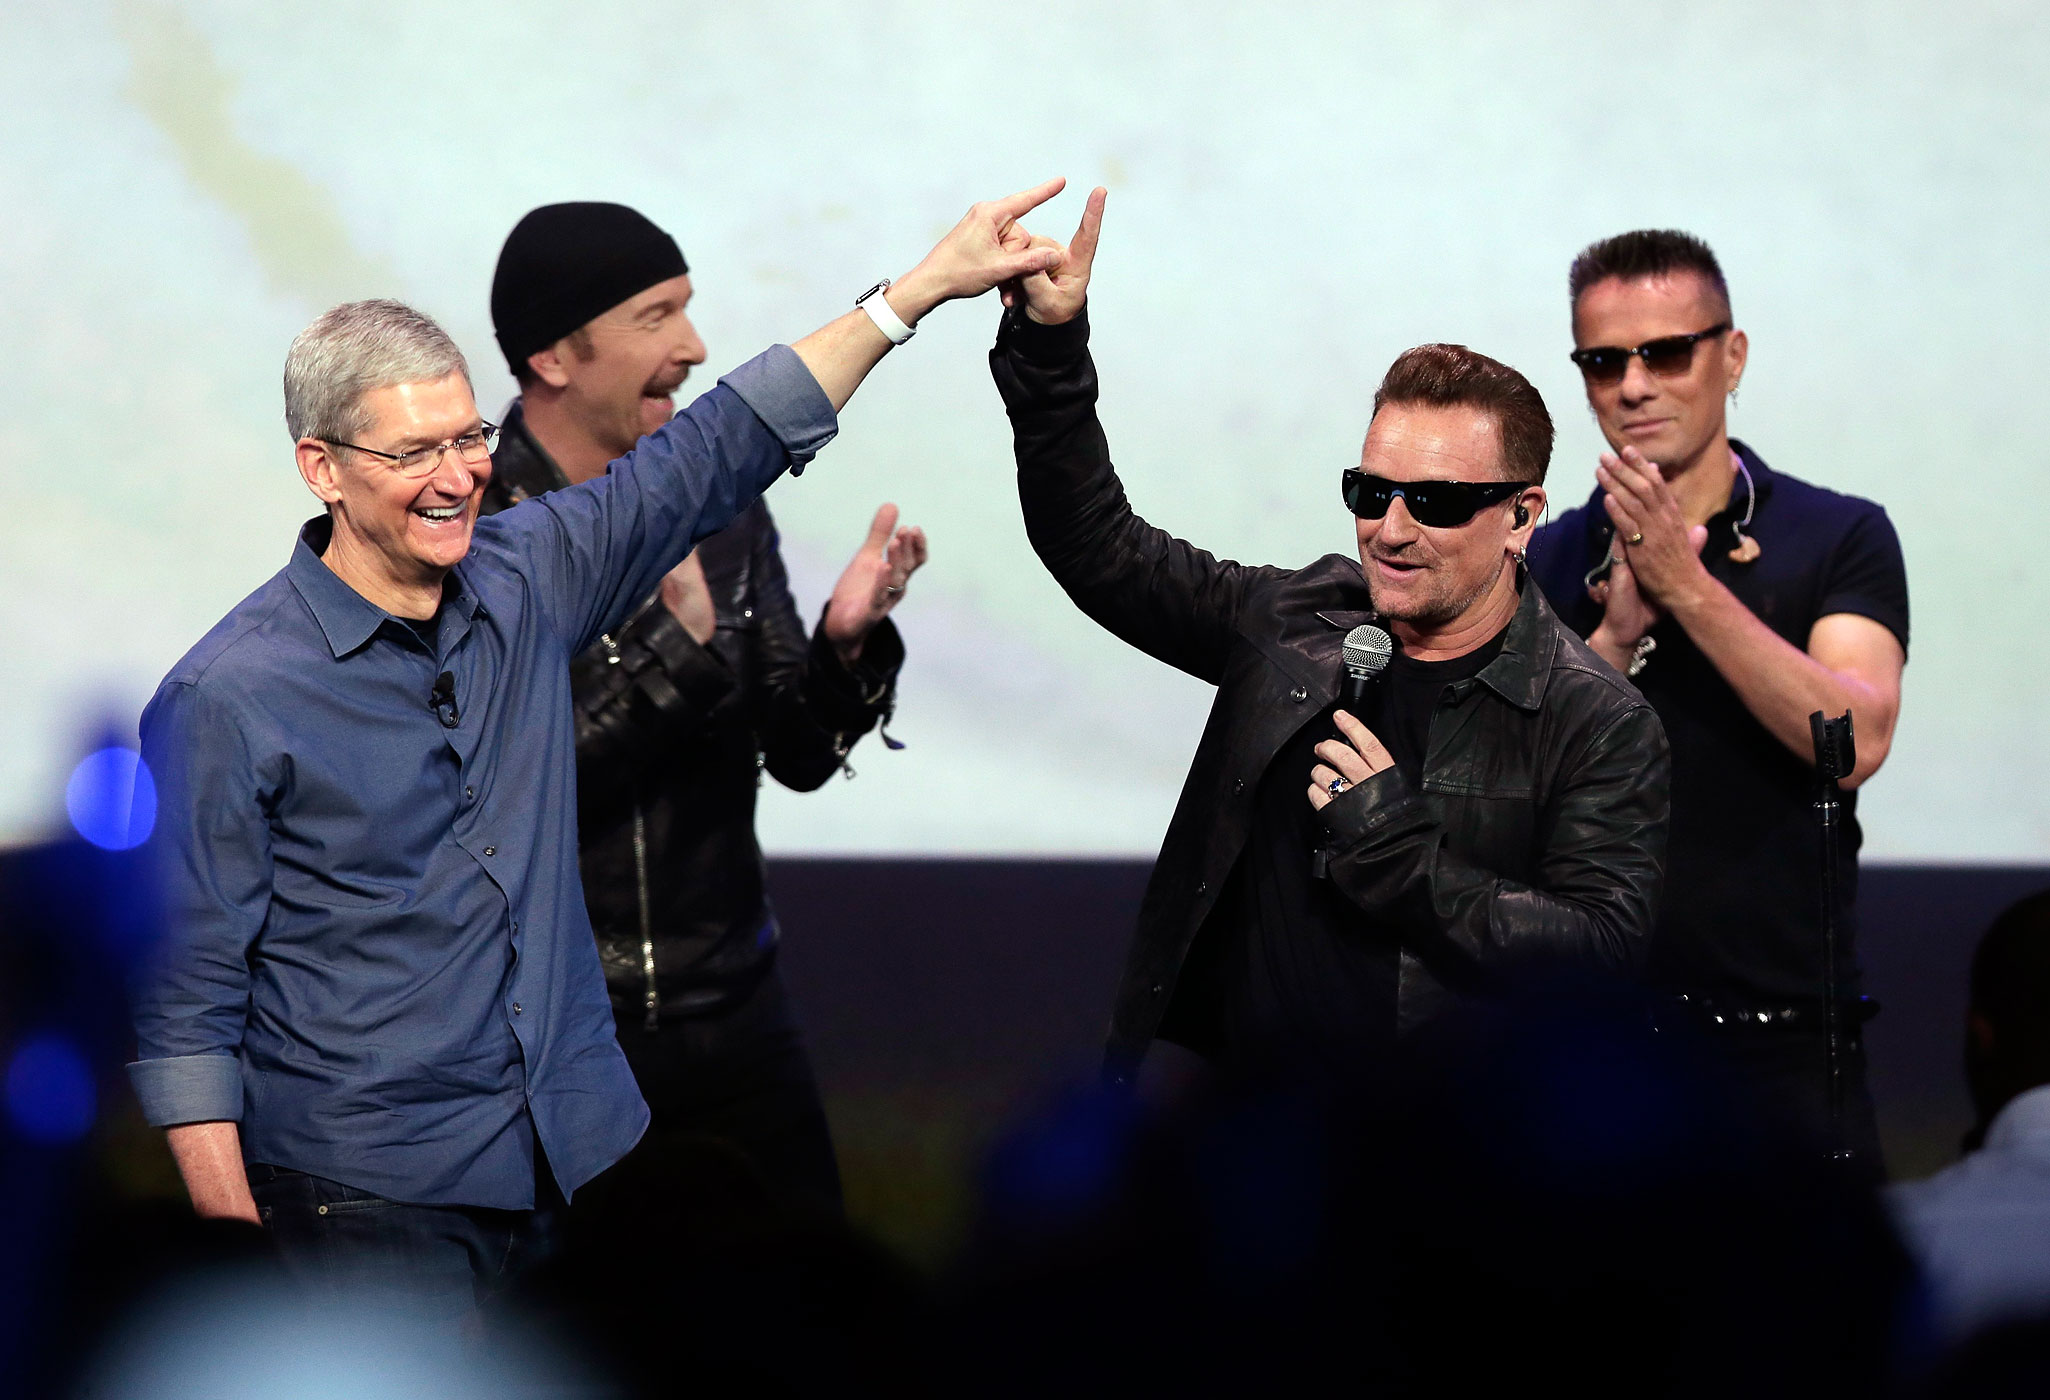 Apple CEO Tim Cook, left, greets Bono from the band U2 after they preformed at the end of the Apple event on Tuesday, Sept. 9, 2014, in Cupertino, Calif.